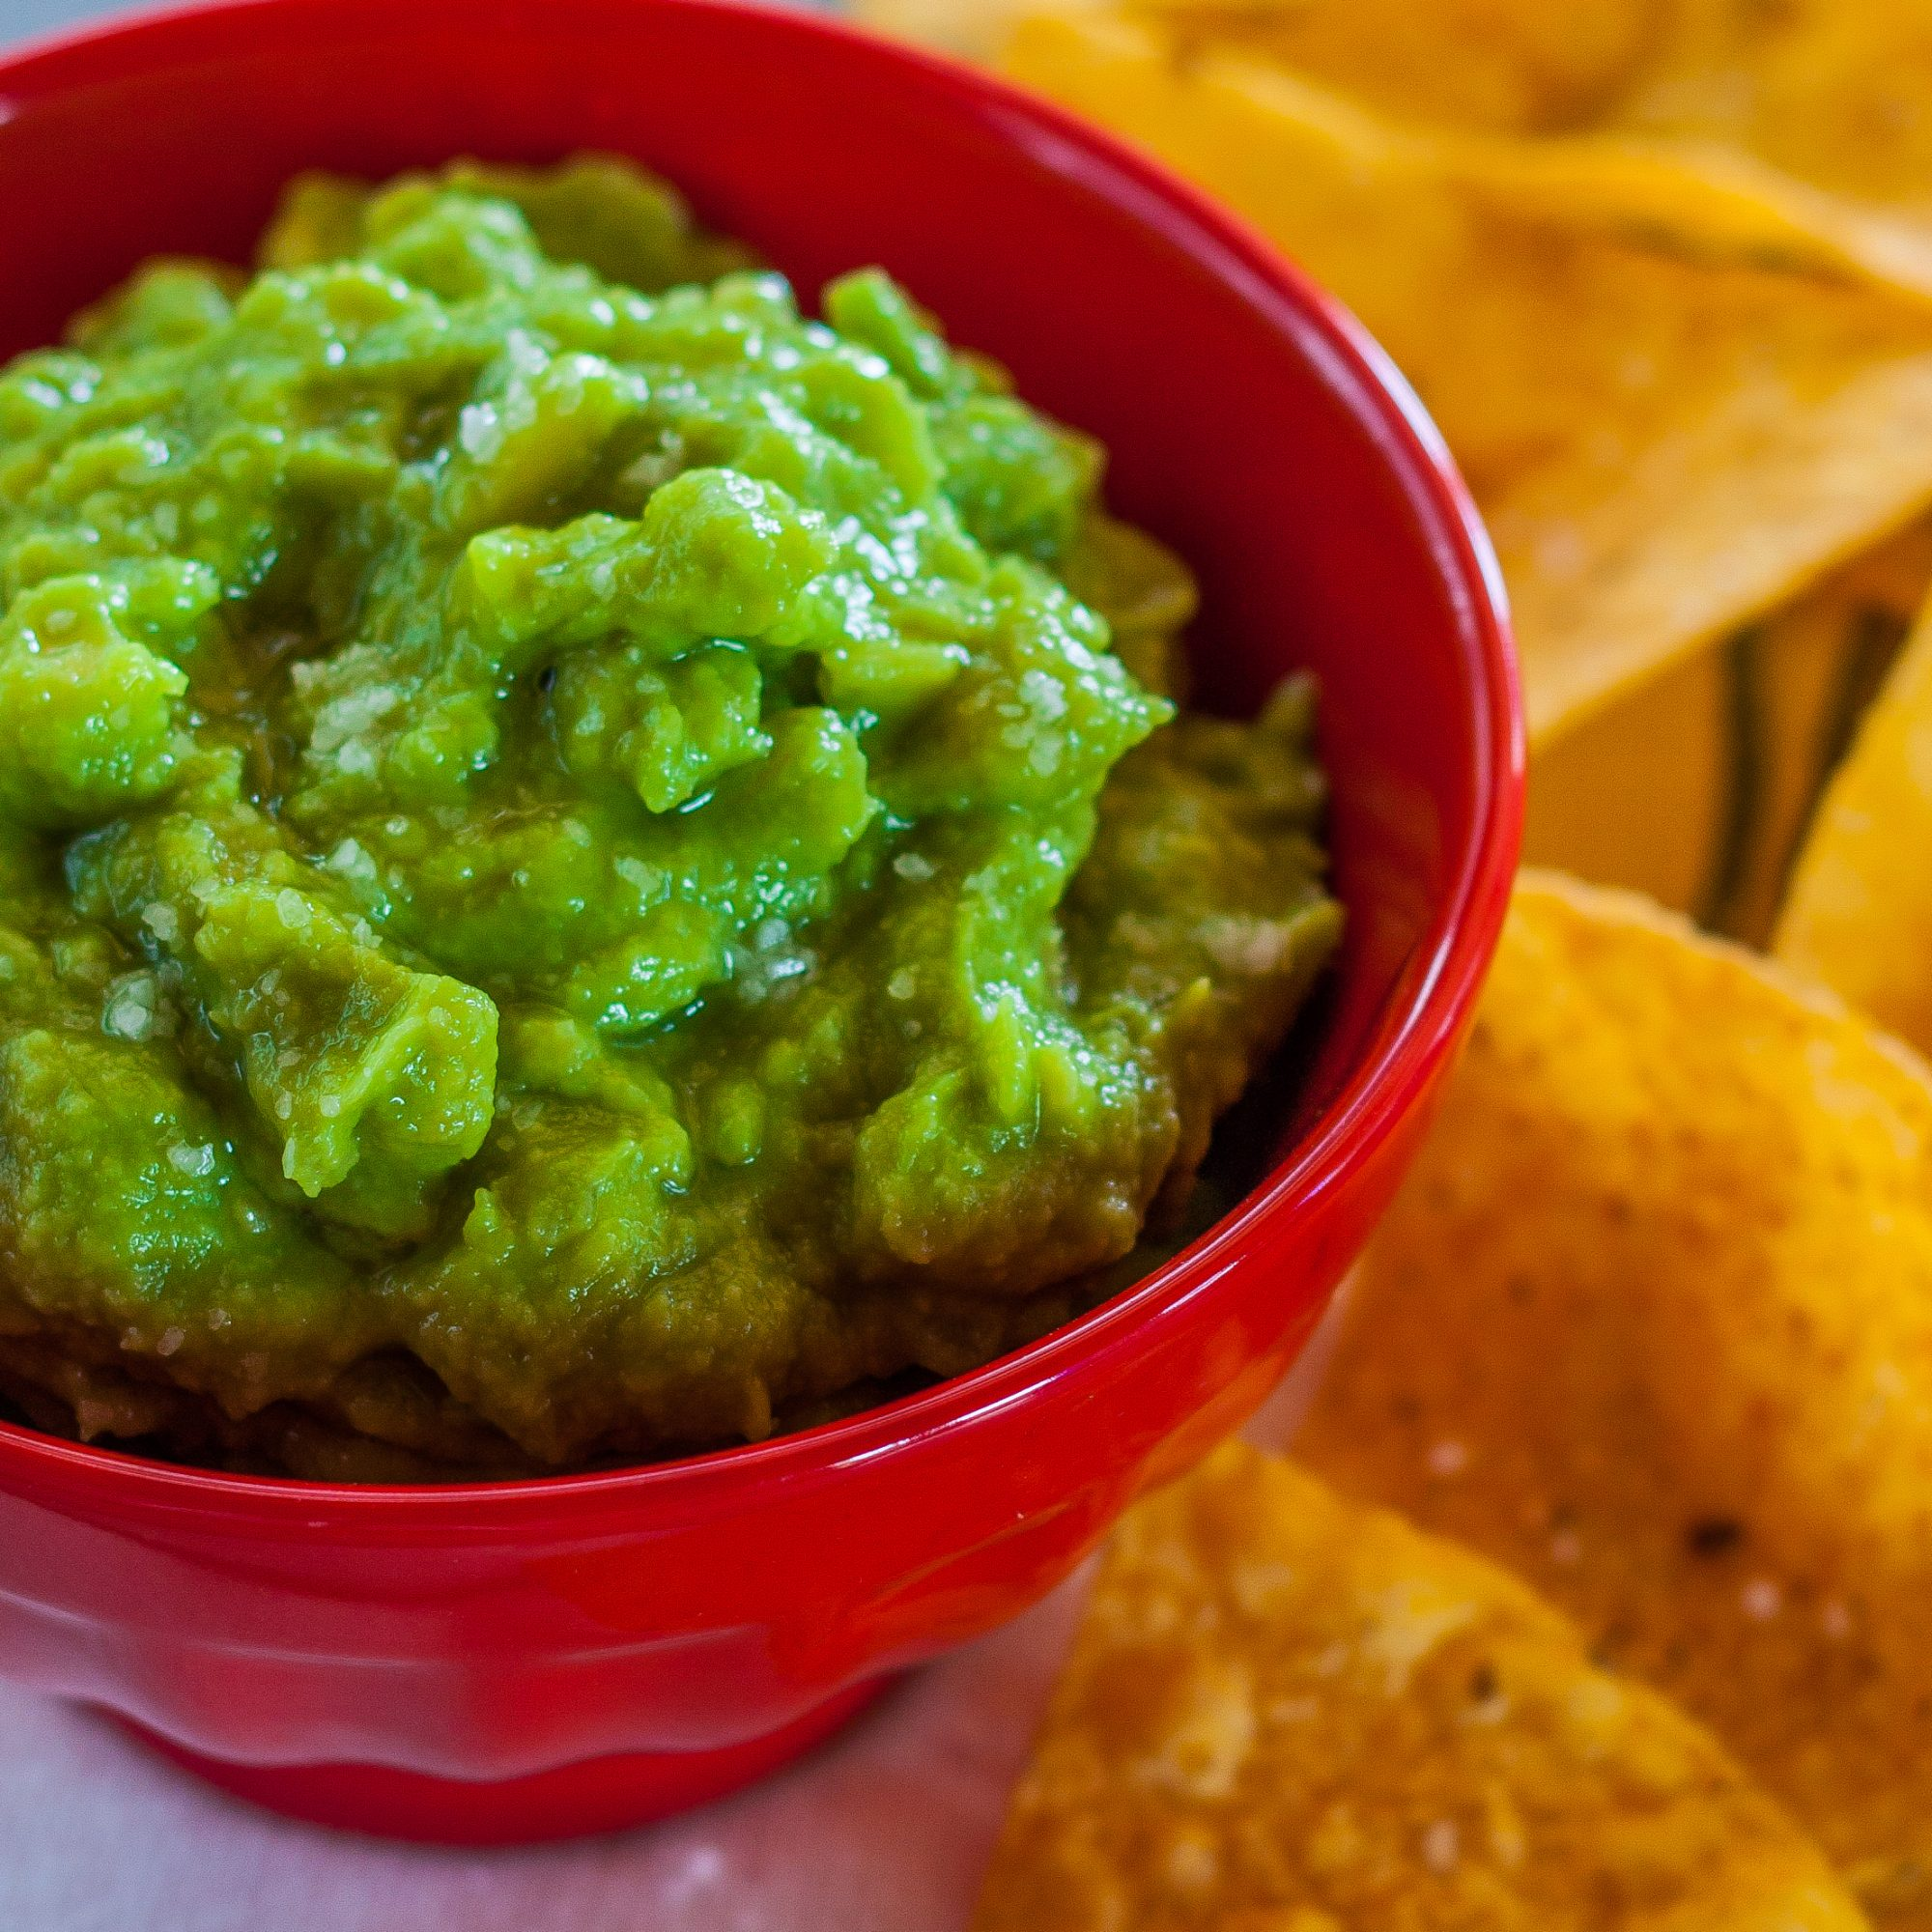 Two-Minute Guacamole